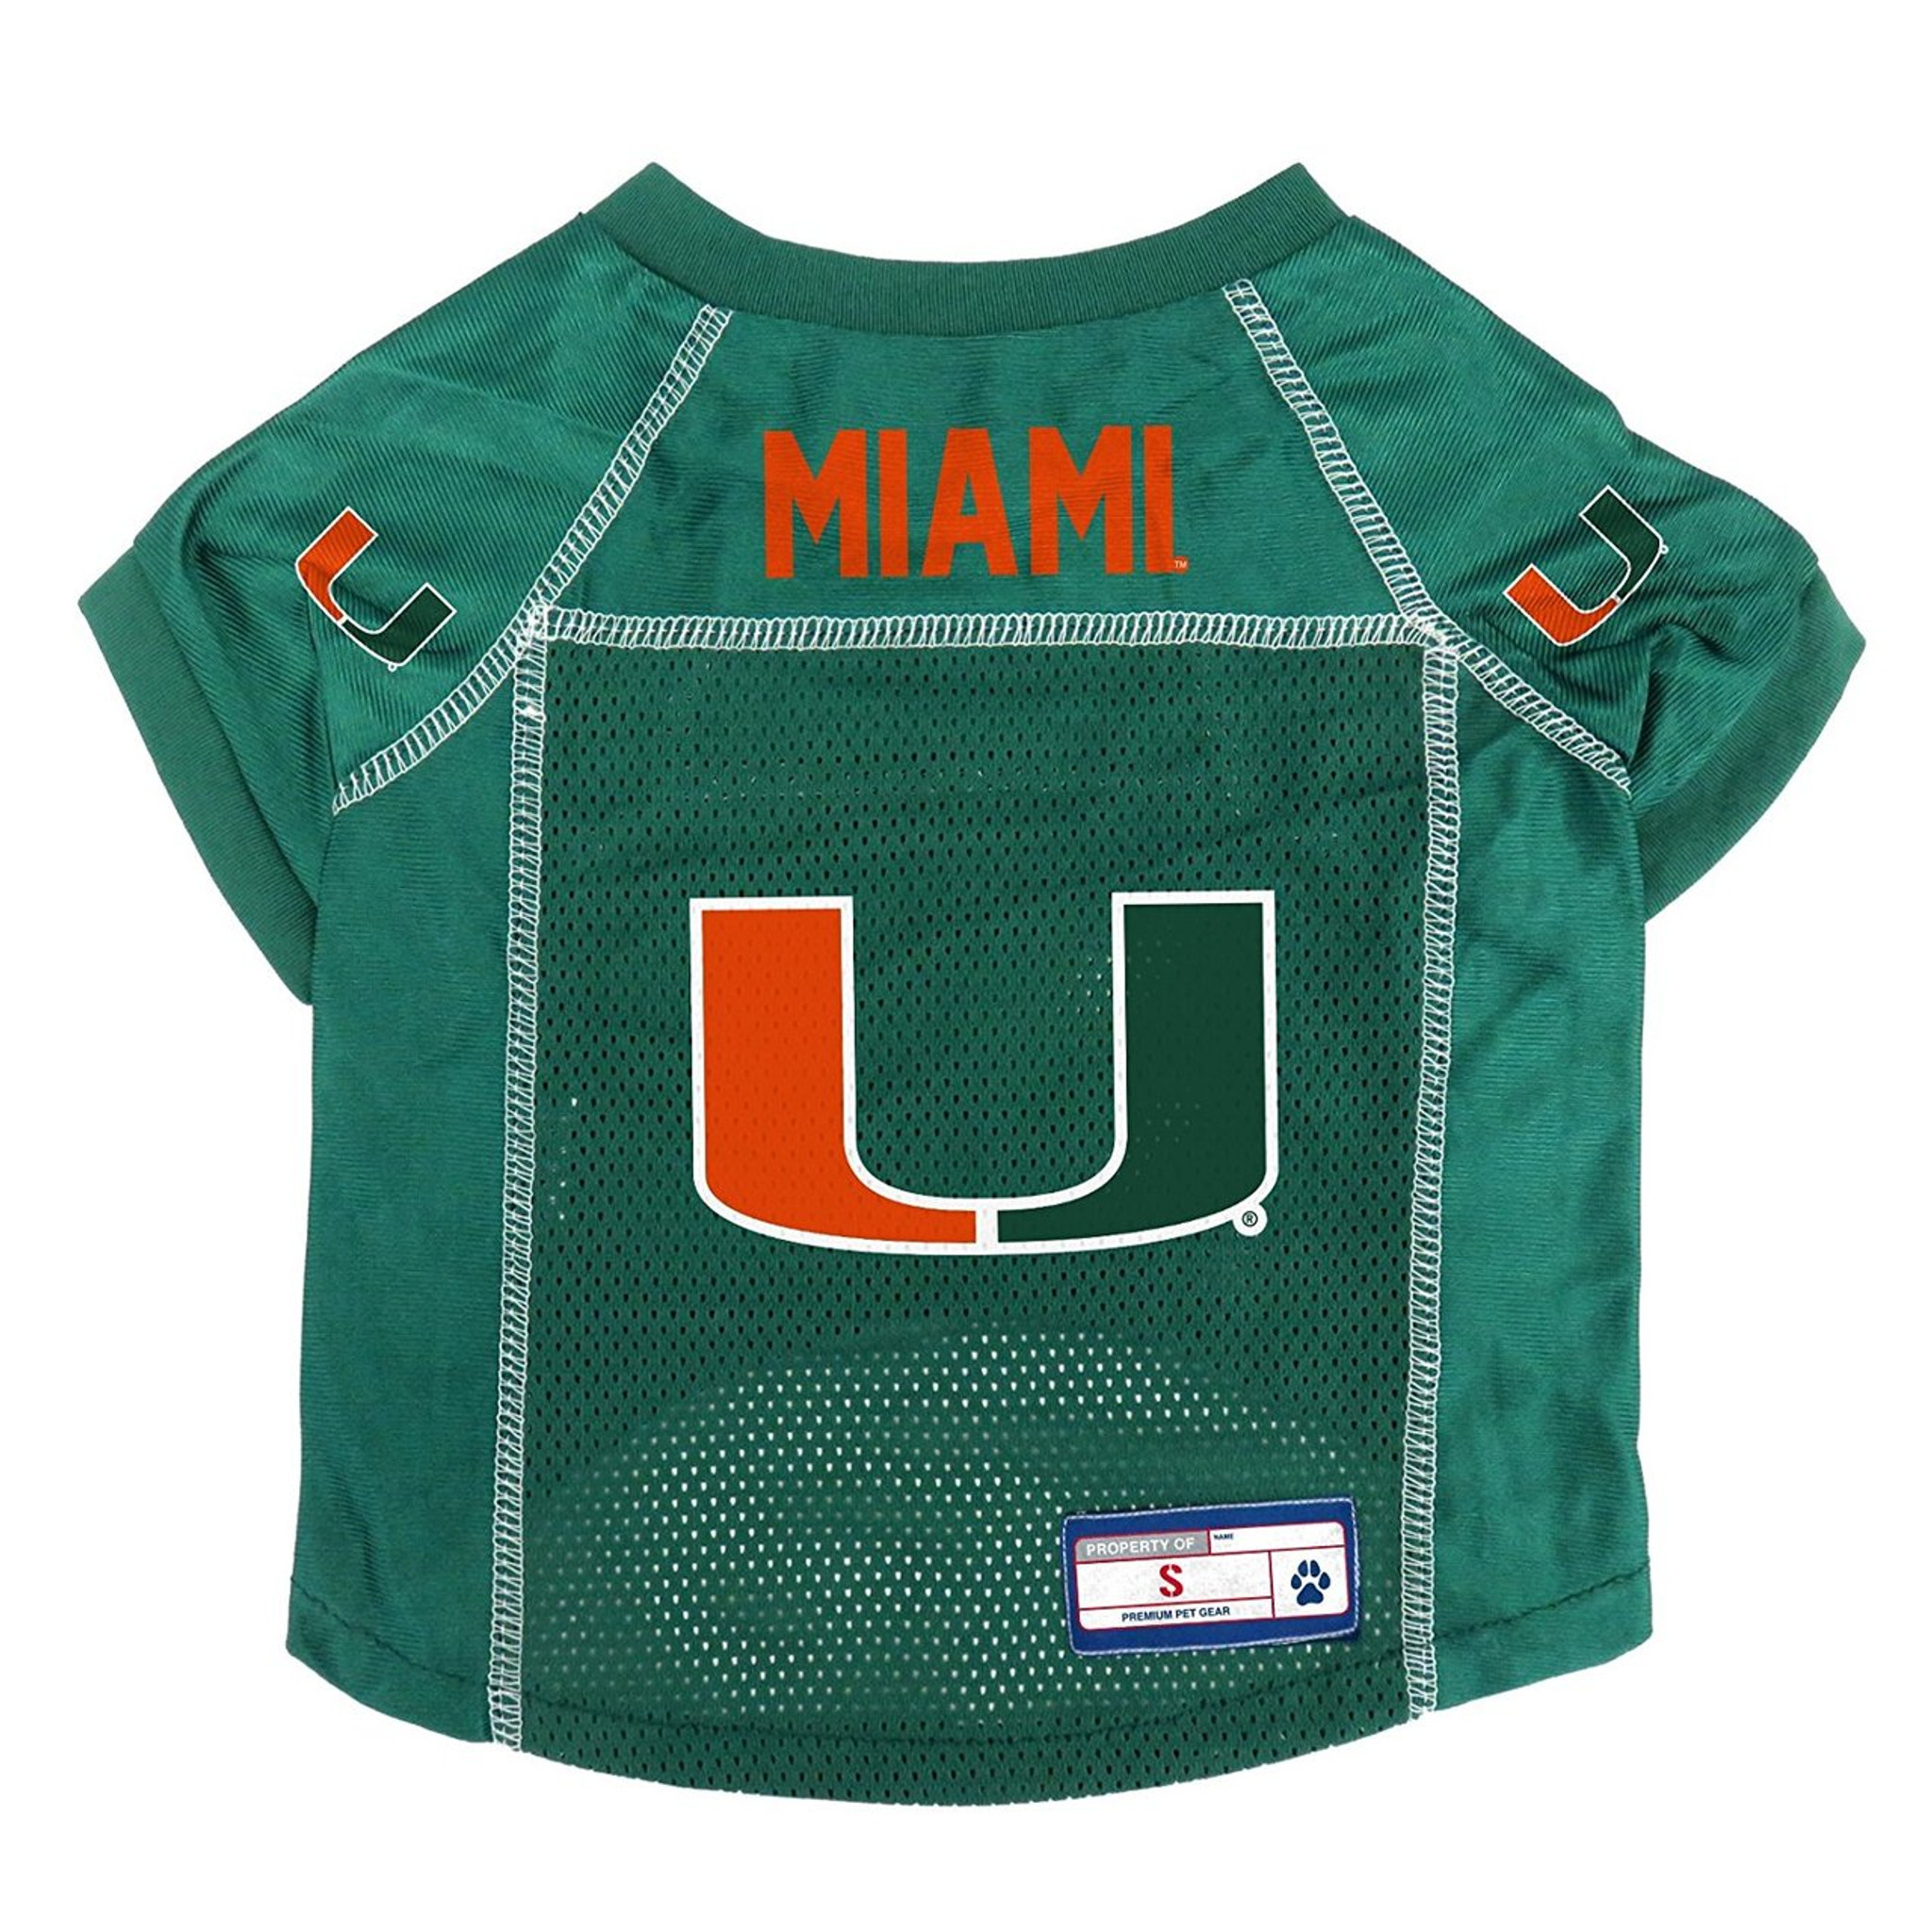 huge selection of 097a7 d89f9 Miami Hurricanes Dog Pet Premium Alternate Mesh Football Jersey LE